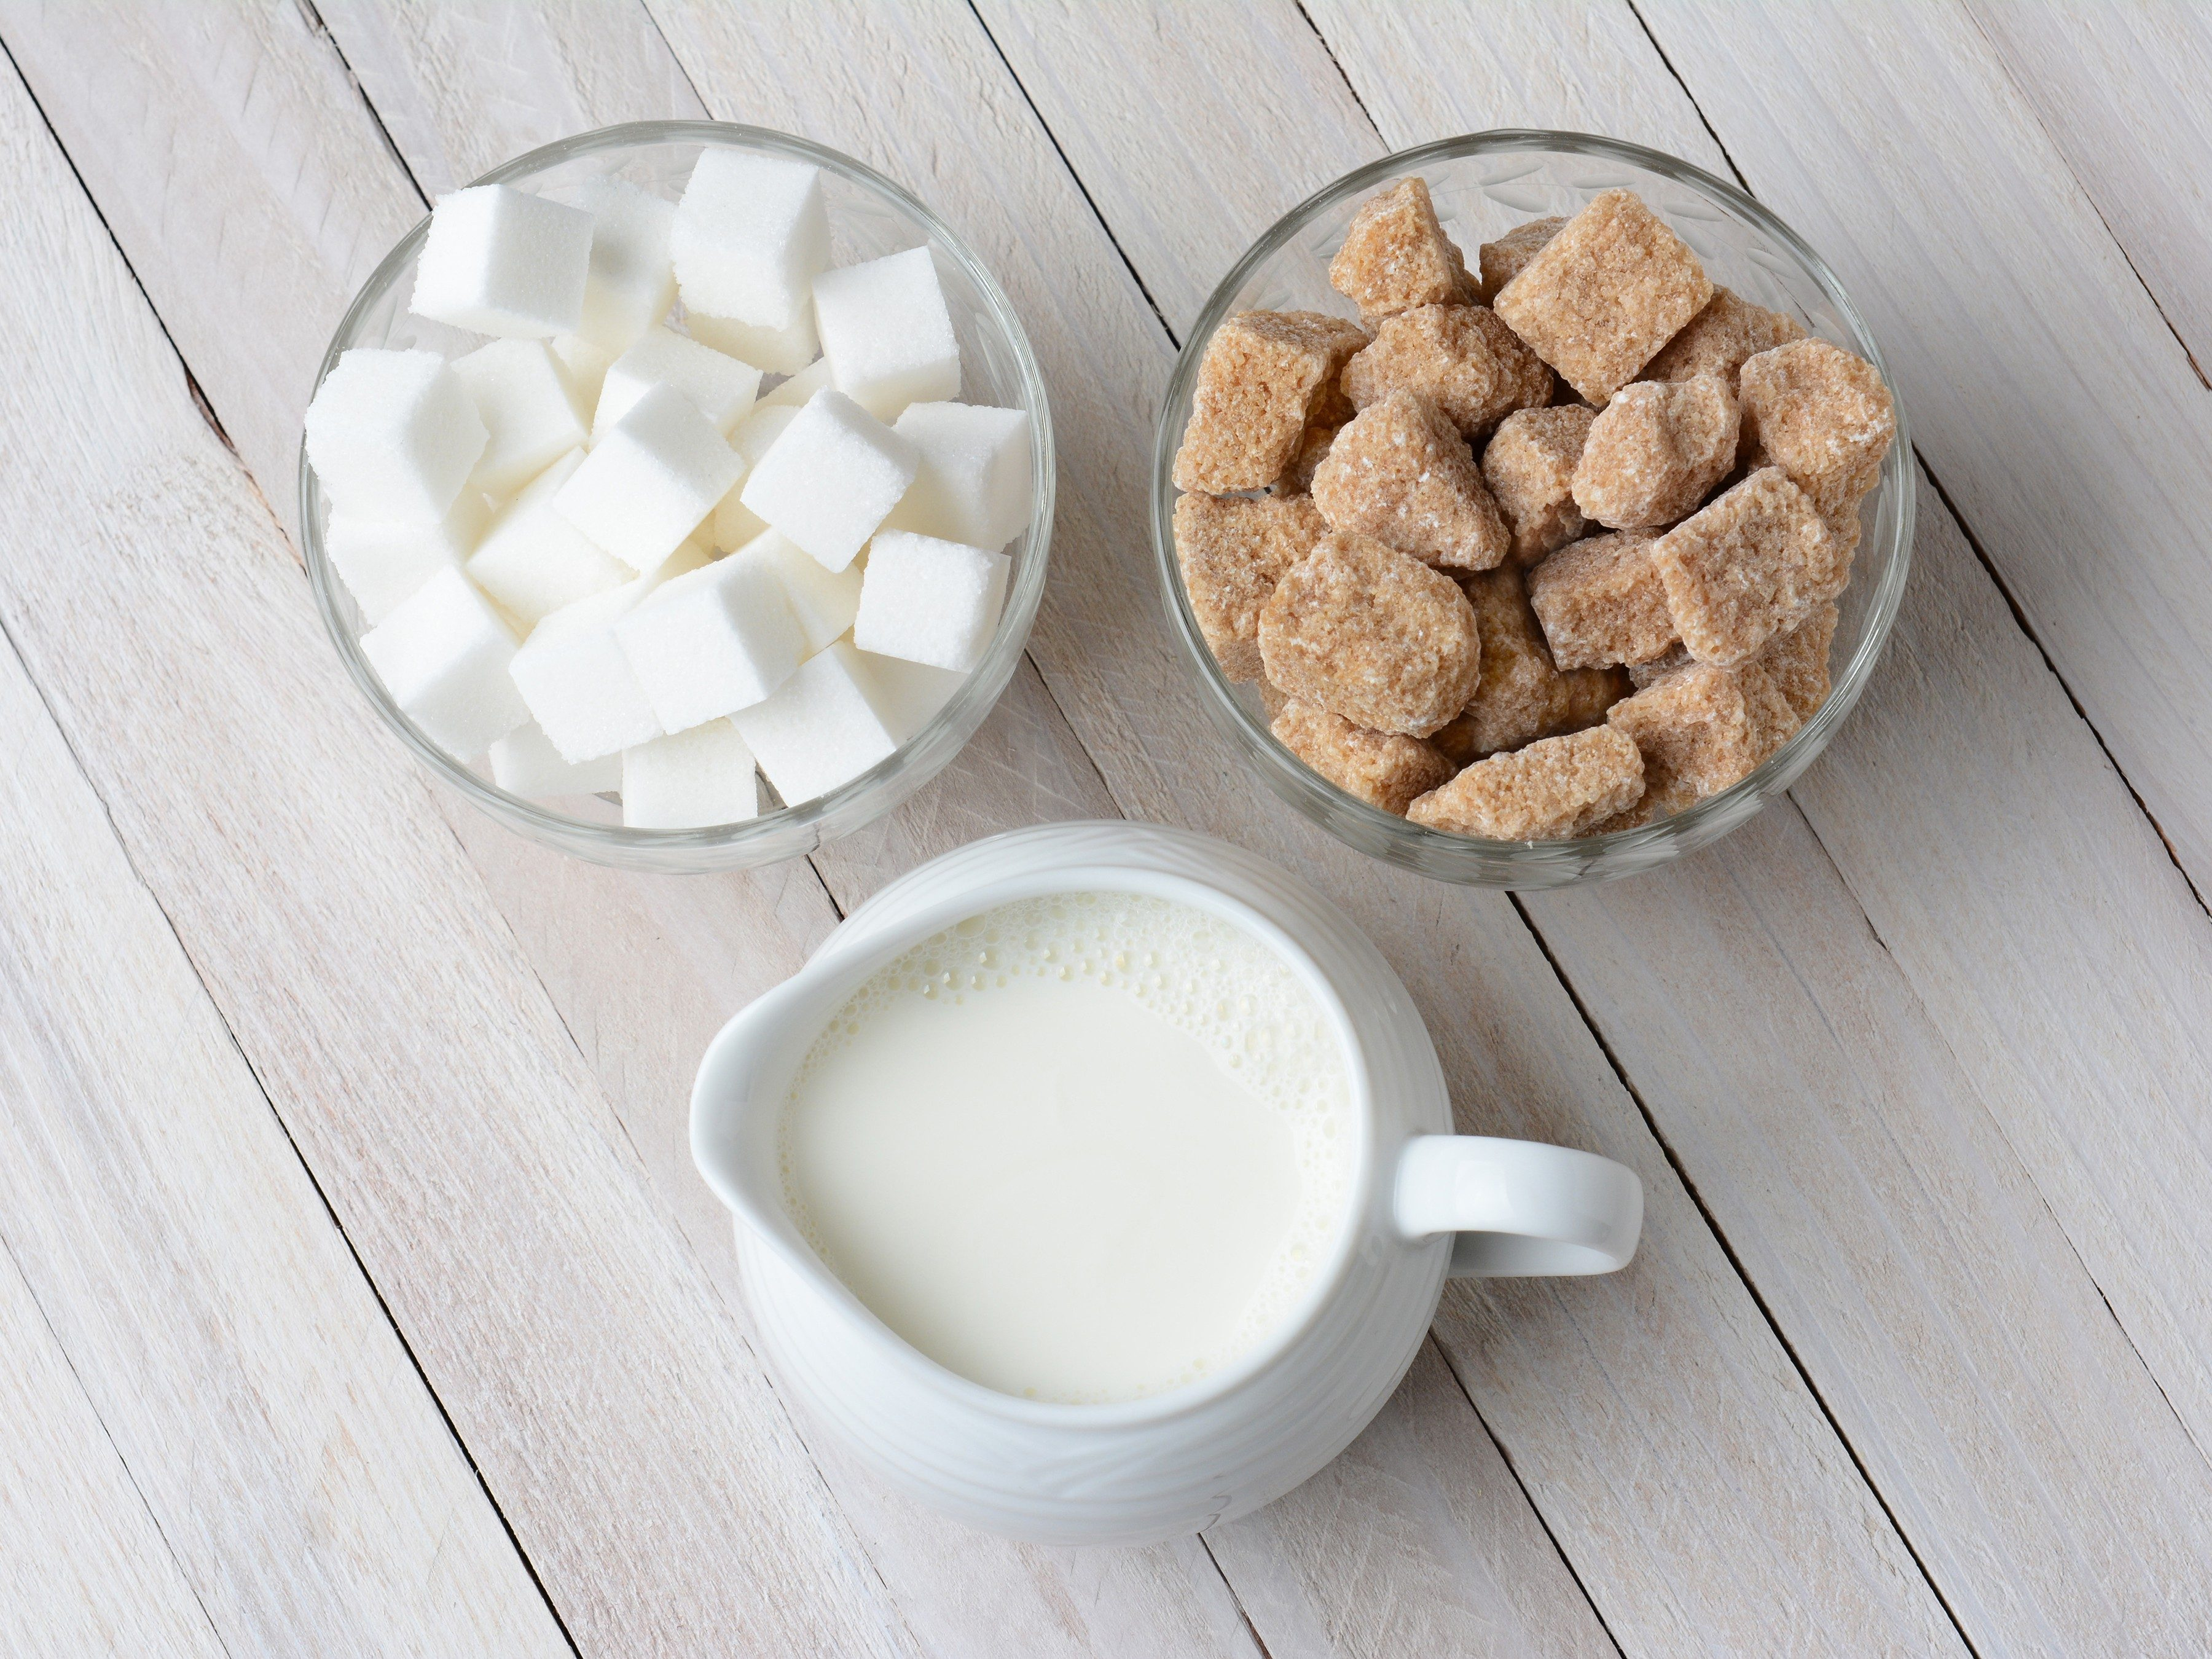 Reading Nutrition Facts: SUGARS